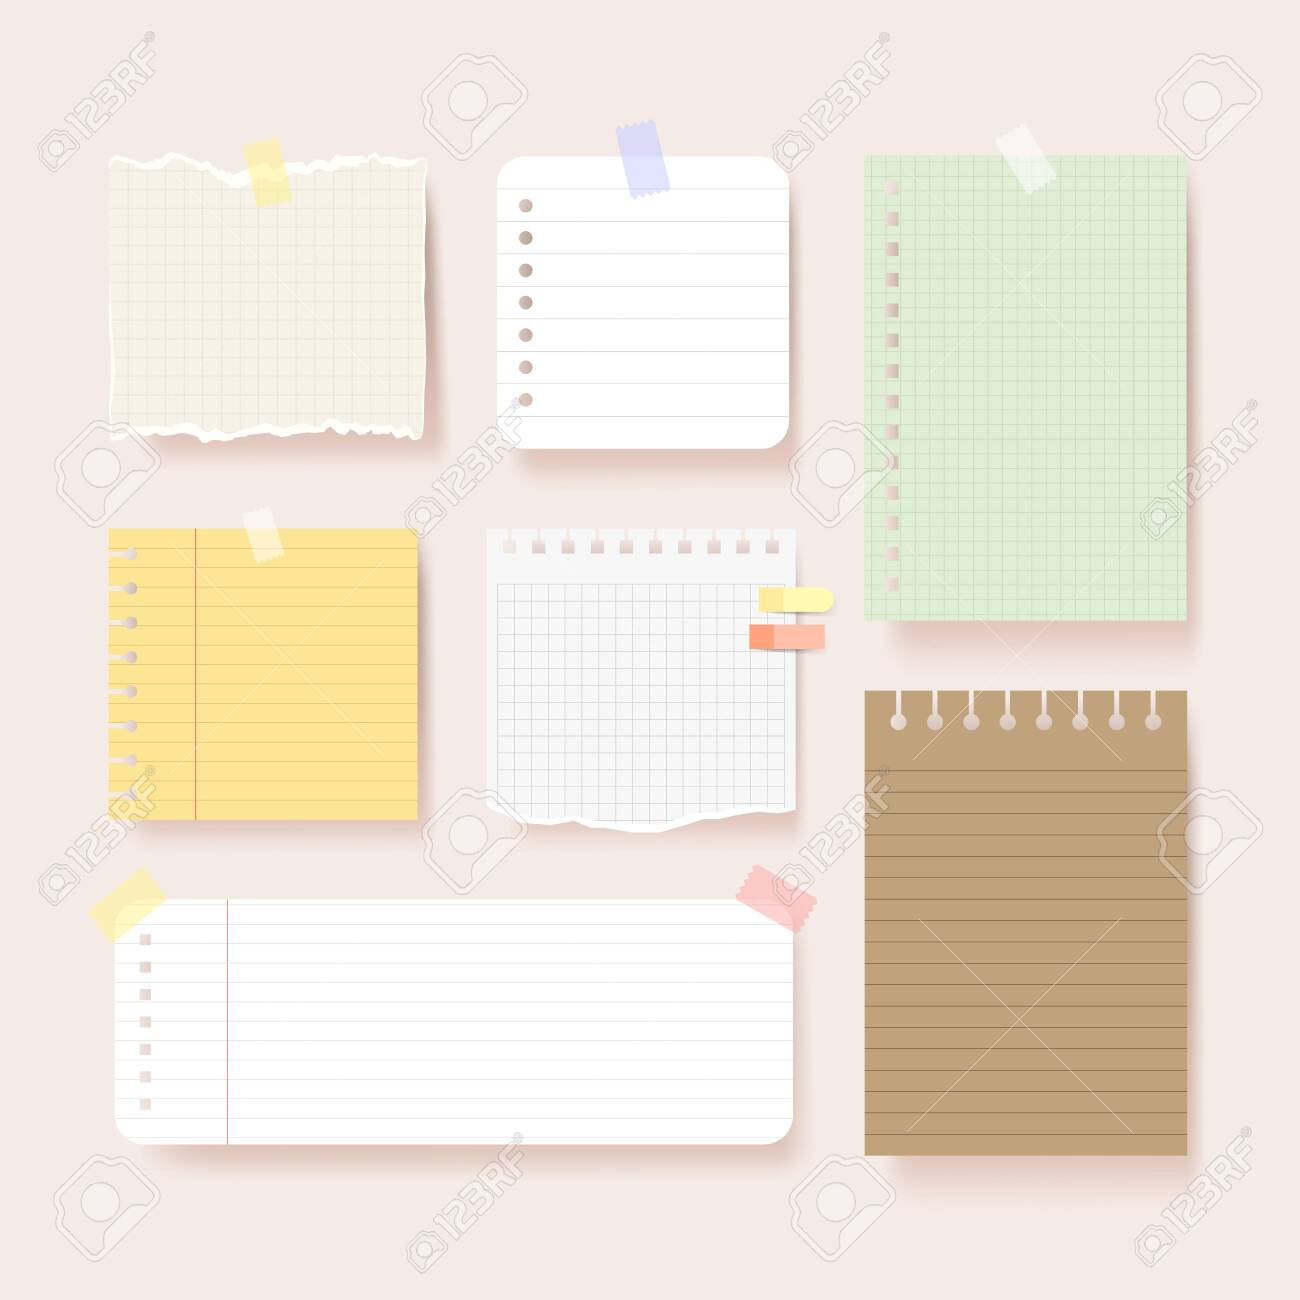 Scrapbook papers. Blank notepad pages vector illustration.Paper glued to wall with tape - 153013061